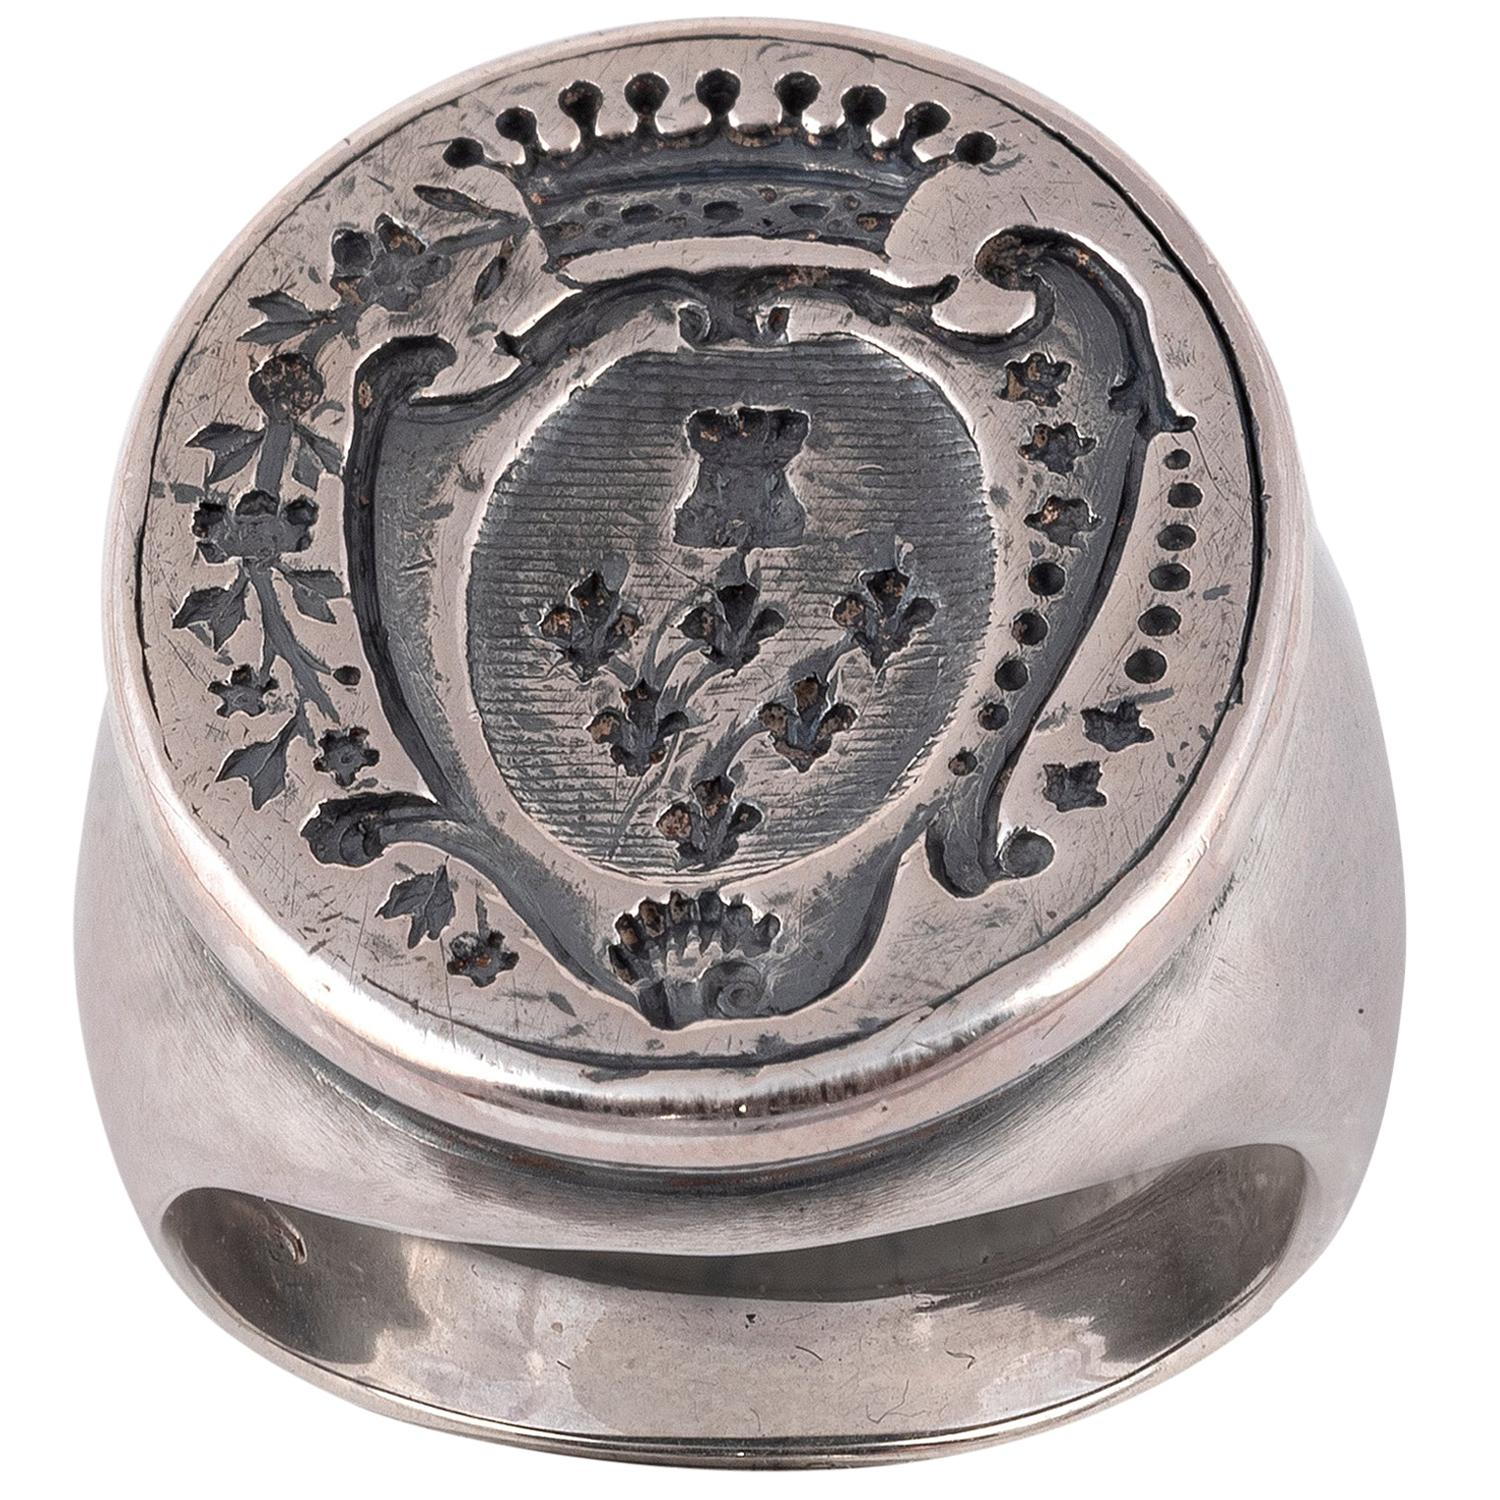 Antique Silver Crest Coat of Arms Signet Ring